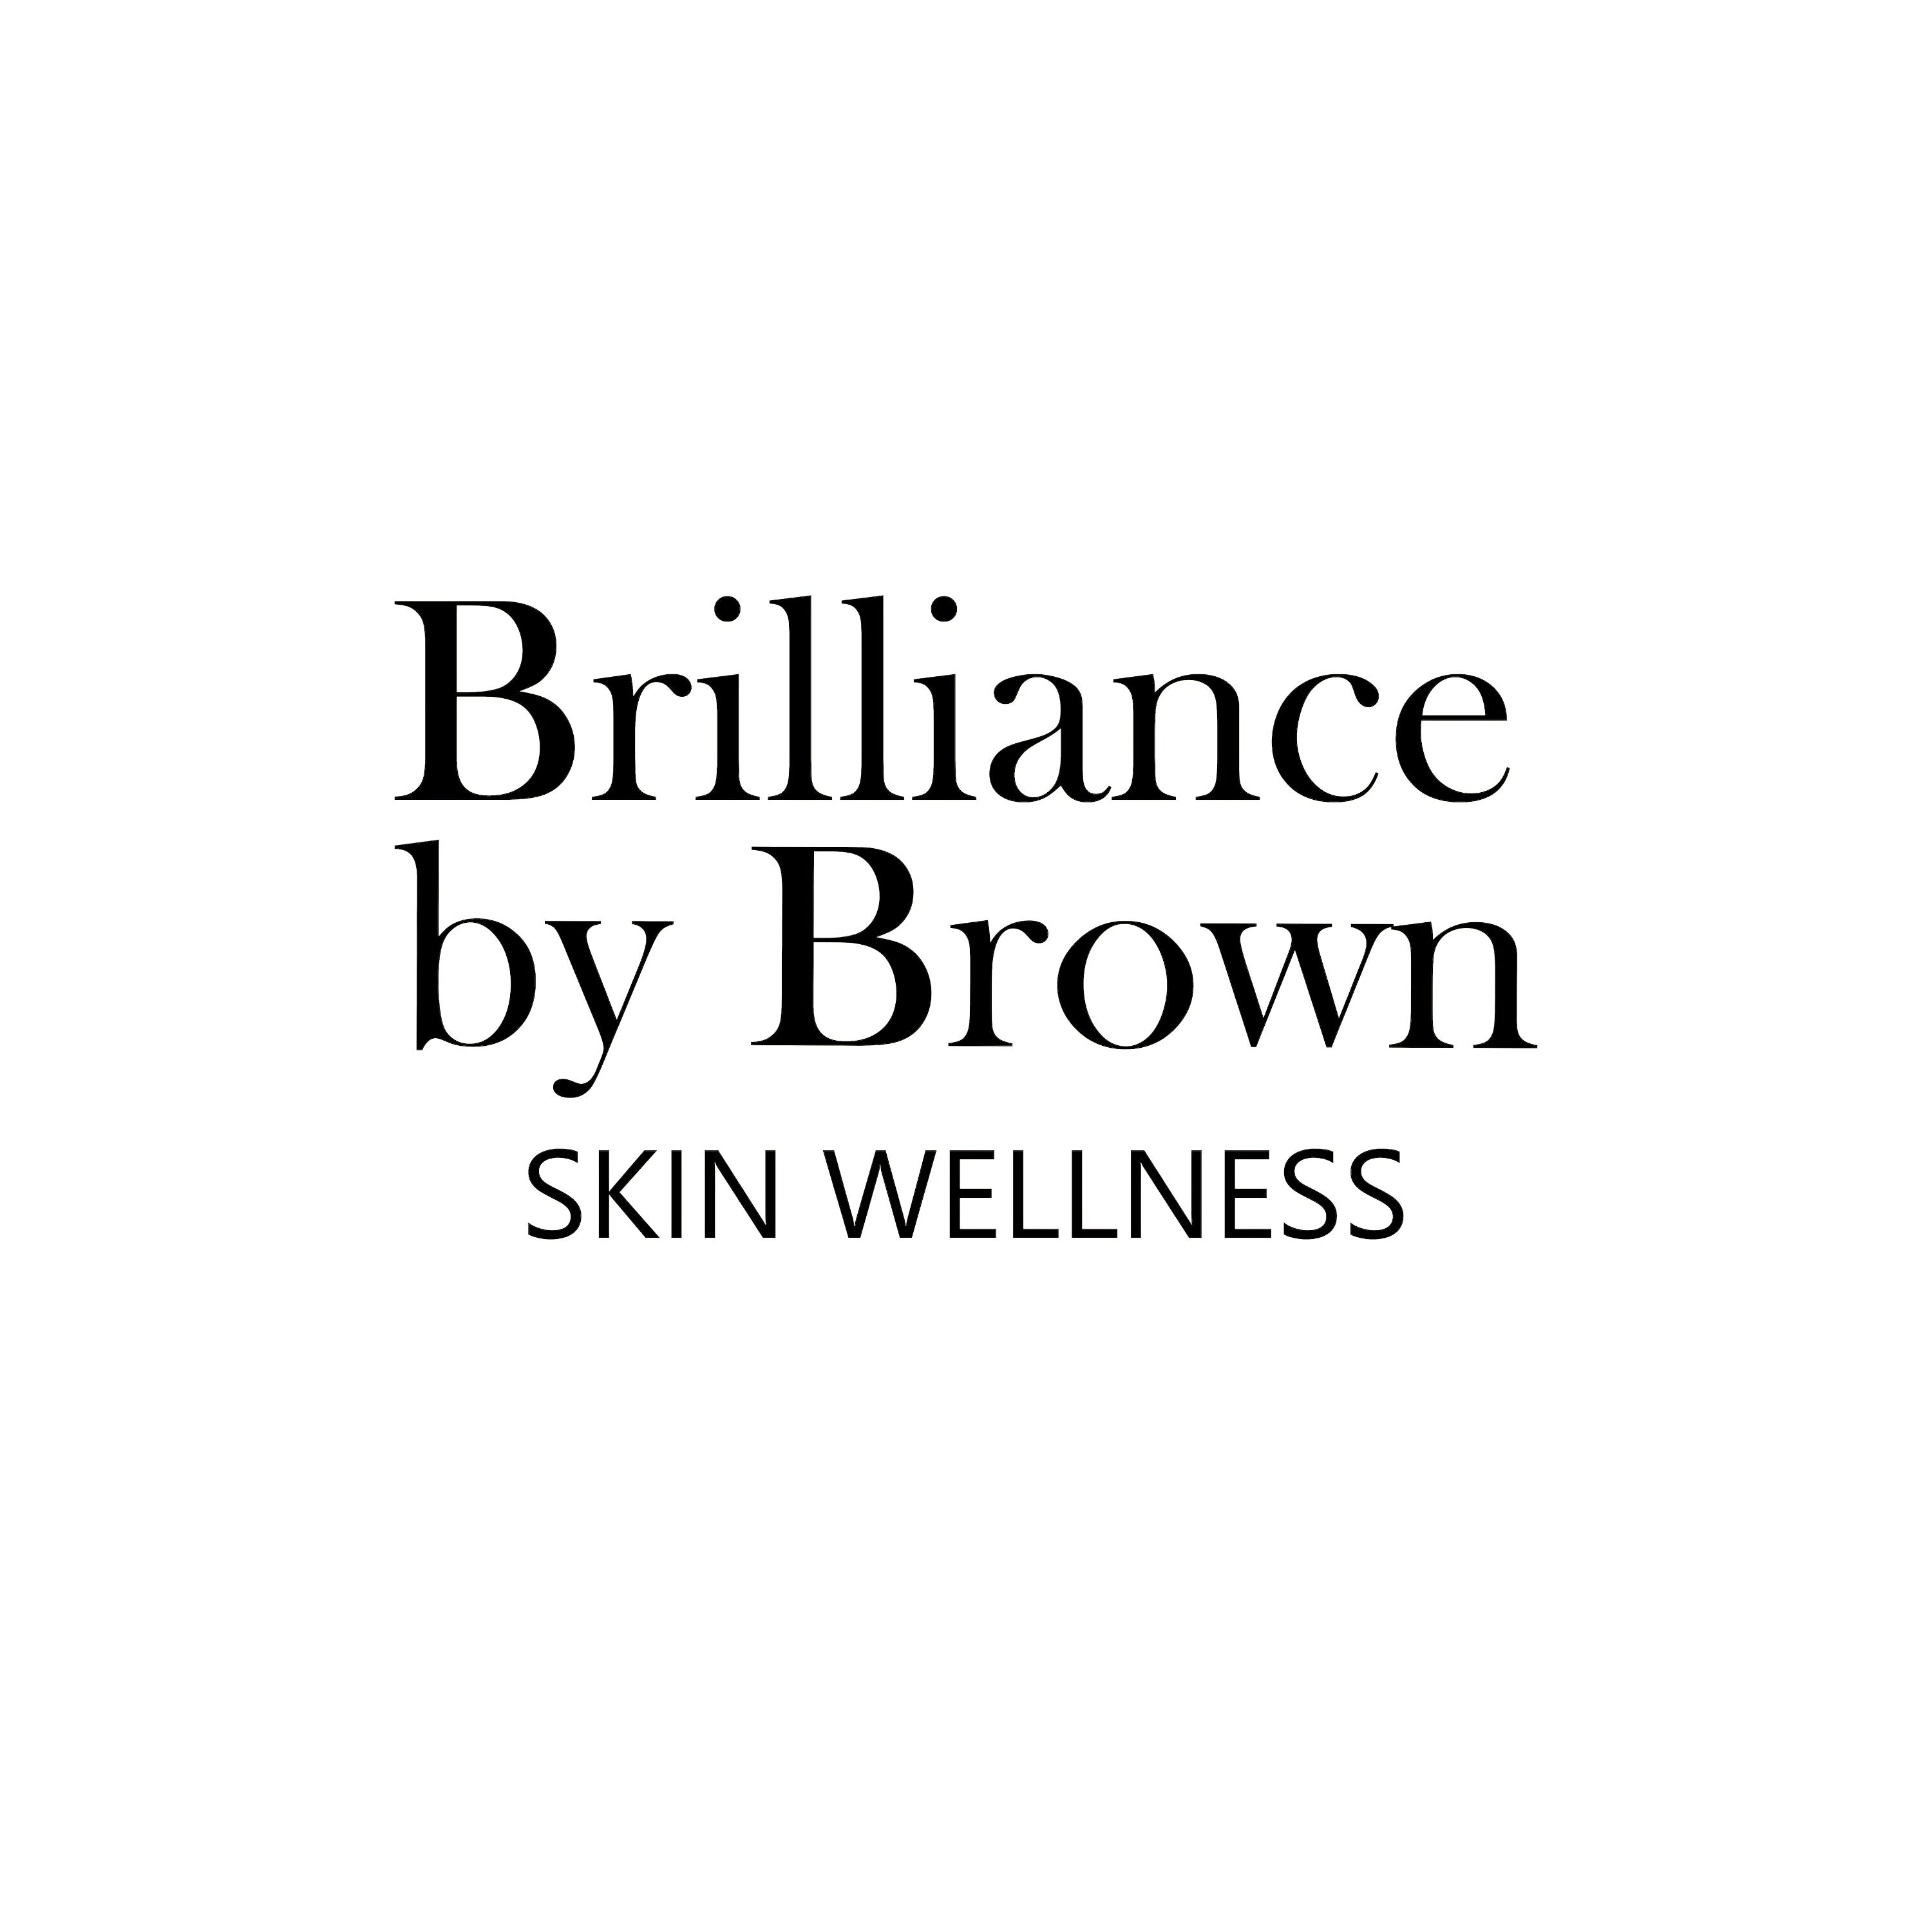 adm skincare in news - Brilliance by brown